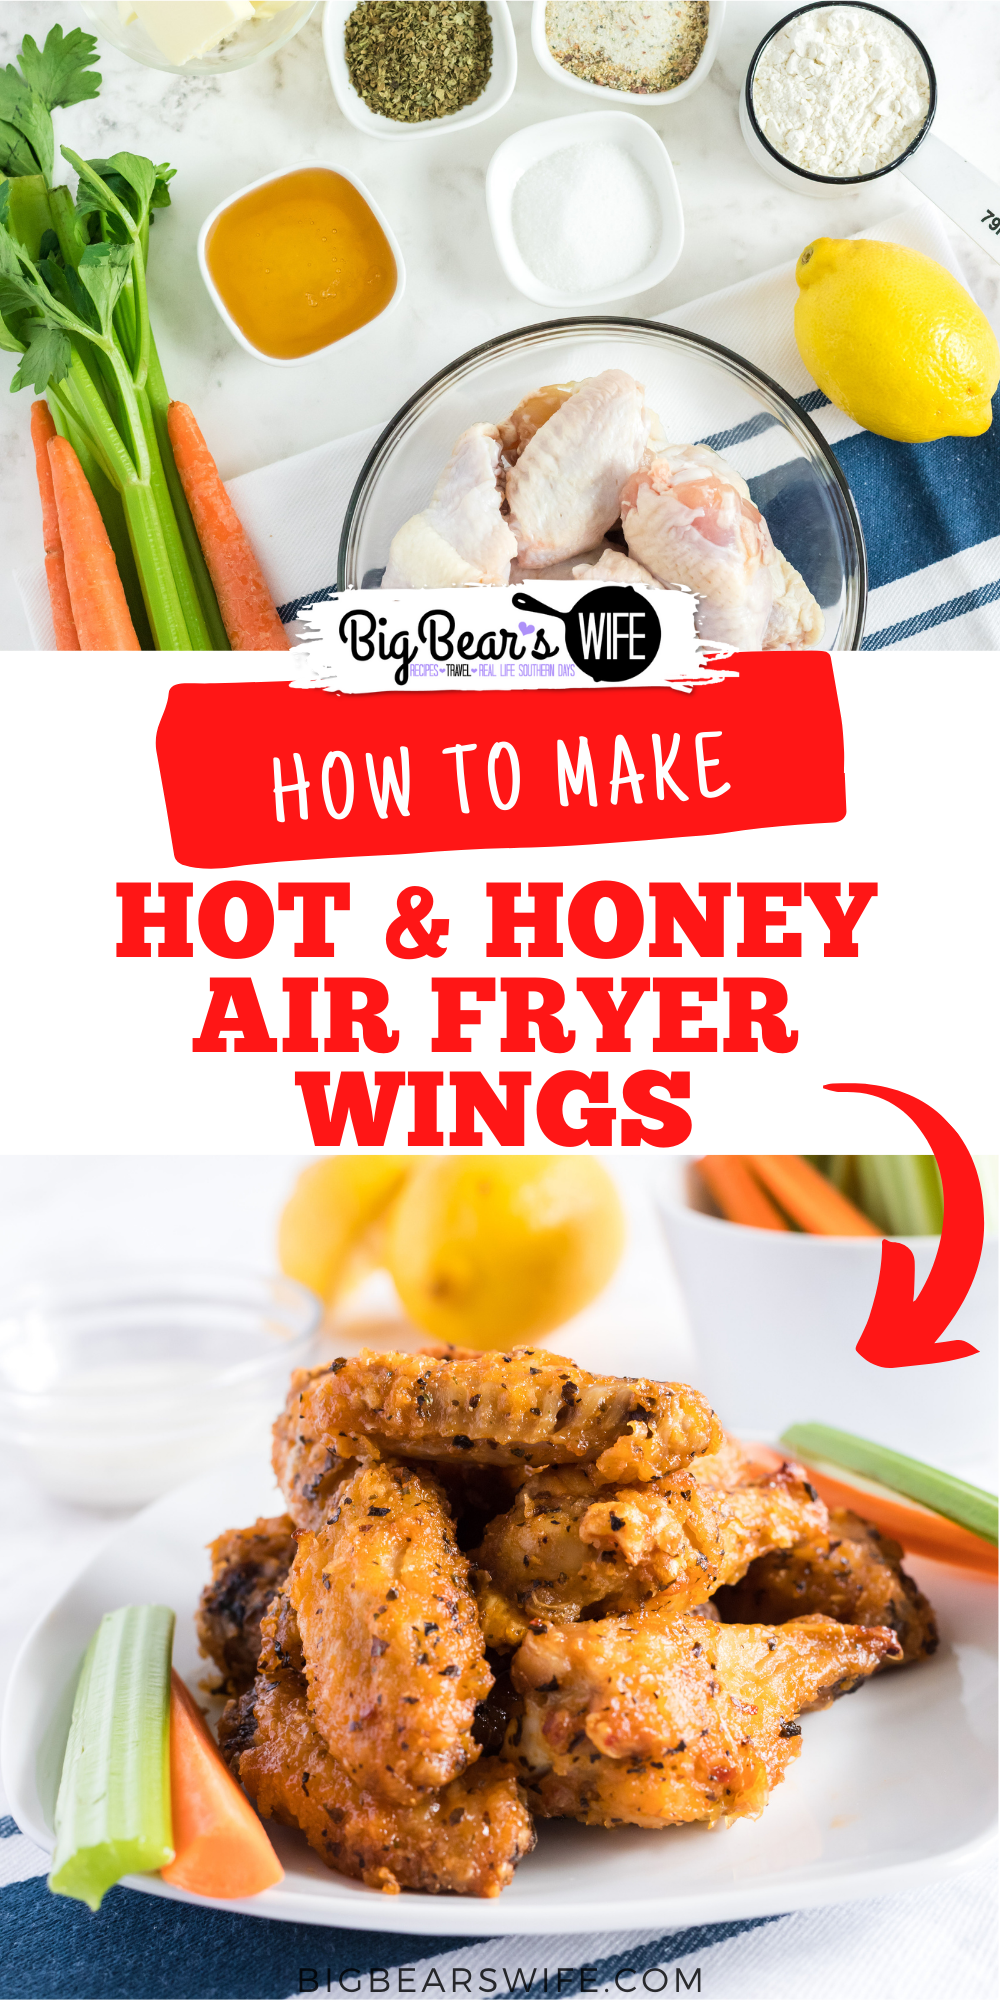 Chicken wings and air fryers are the perfect combination! These Hot Honey Air Fryer Wings cook up in about 30 minutes and are coated in a homemade hot honey sauce! Perfect for lunch, dinner or as an appetizer for game day! via @bigbearswife